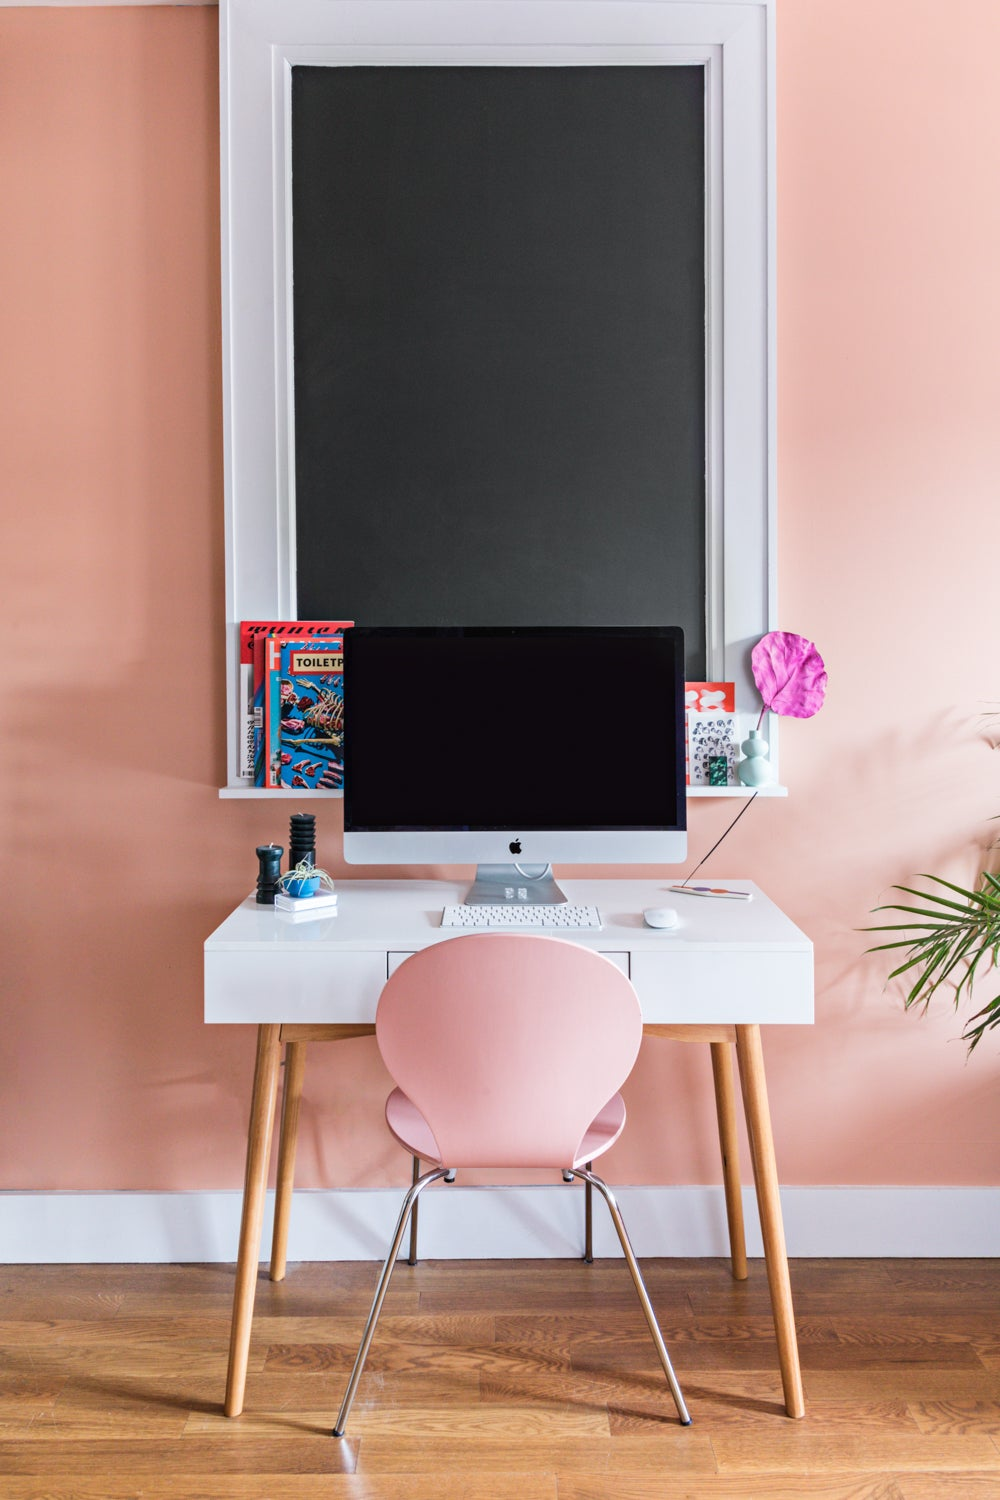 Pink room with desk